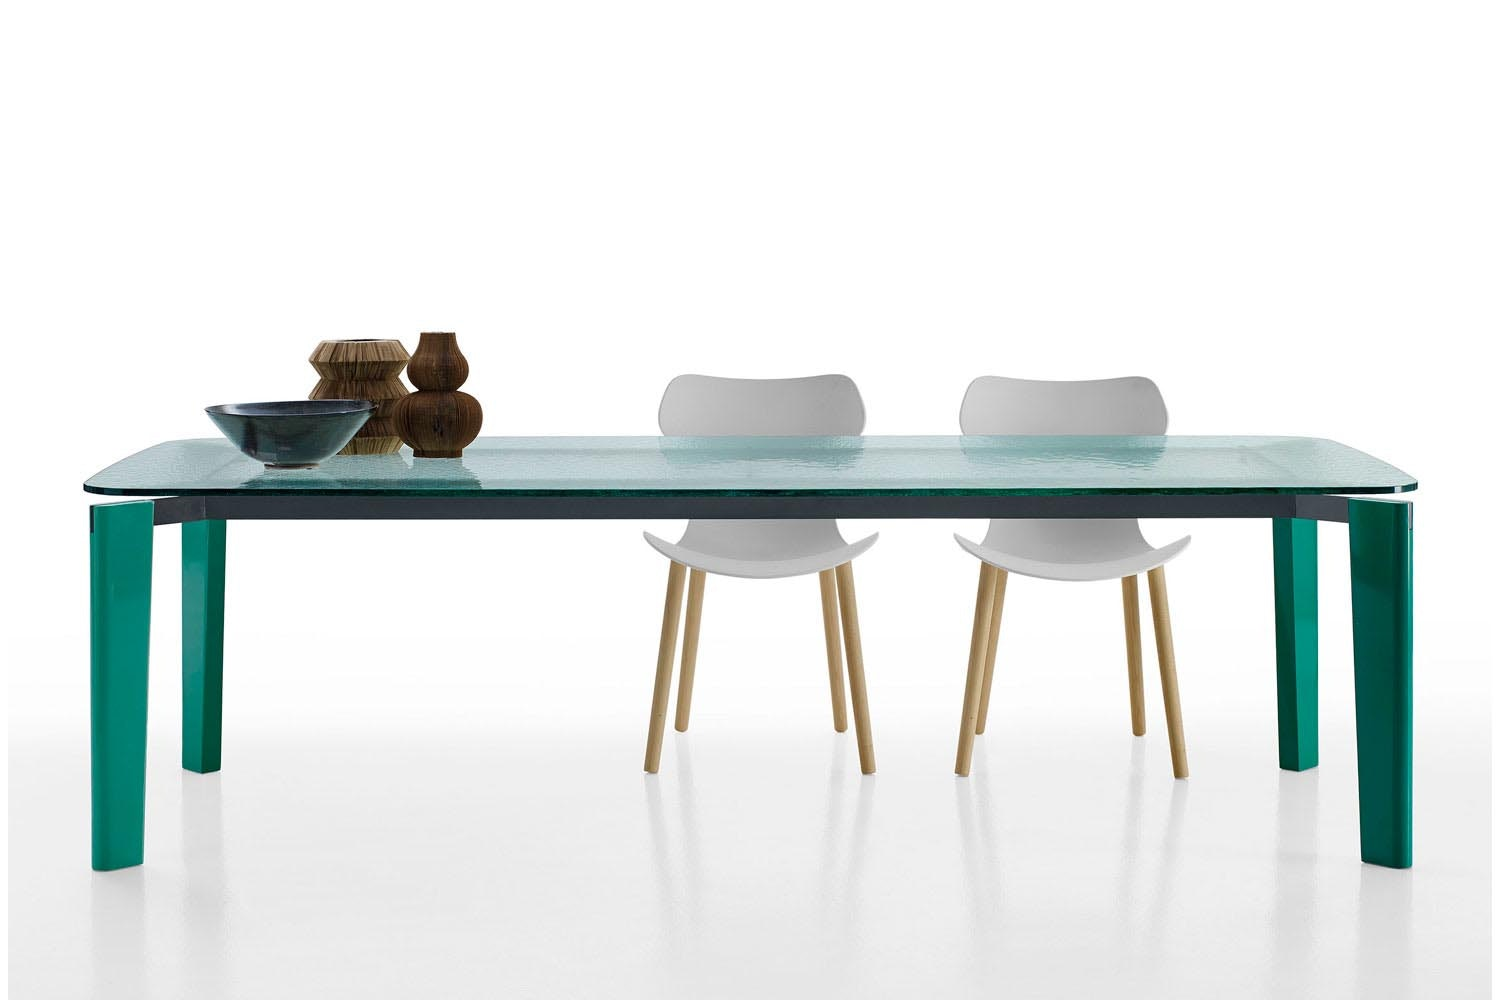 Oskar Table by Vincent Van Duysen for B&B Italia